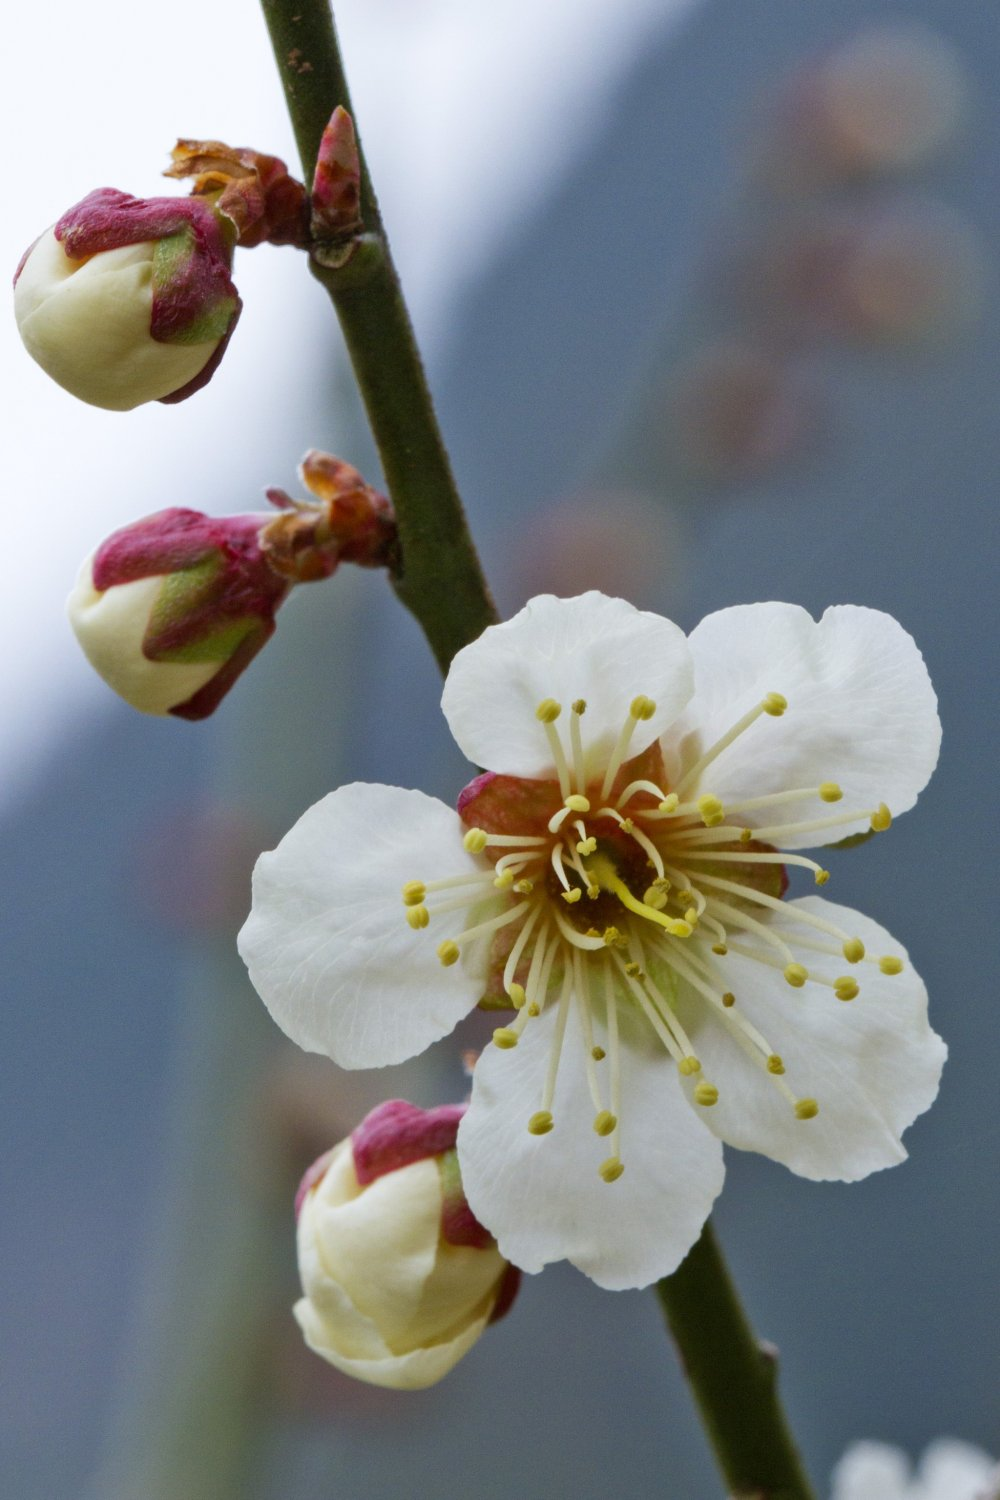 Ume precede the more famous sakura, or cherry blossoms, by a month